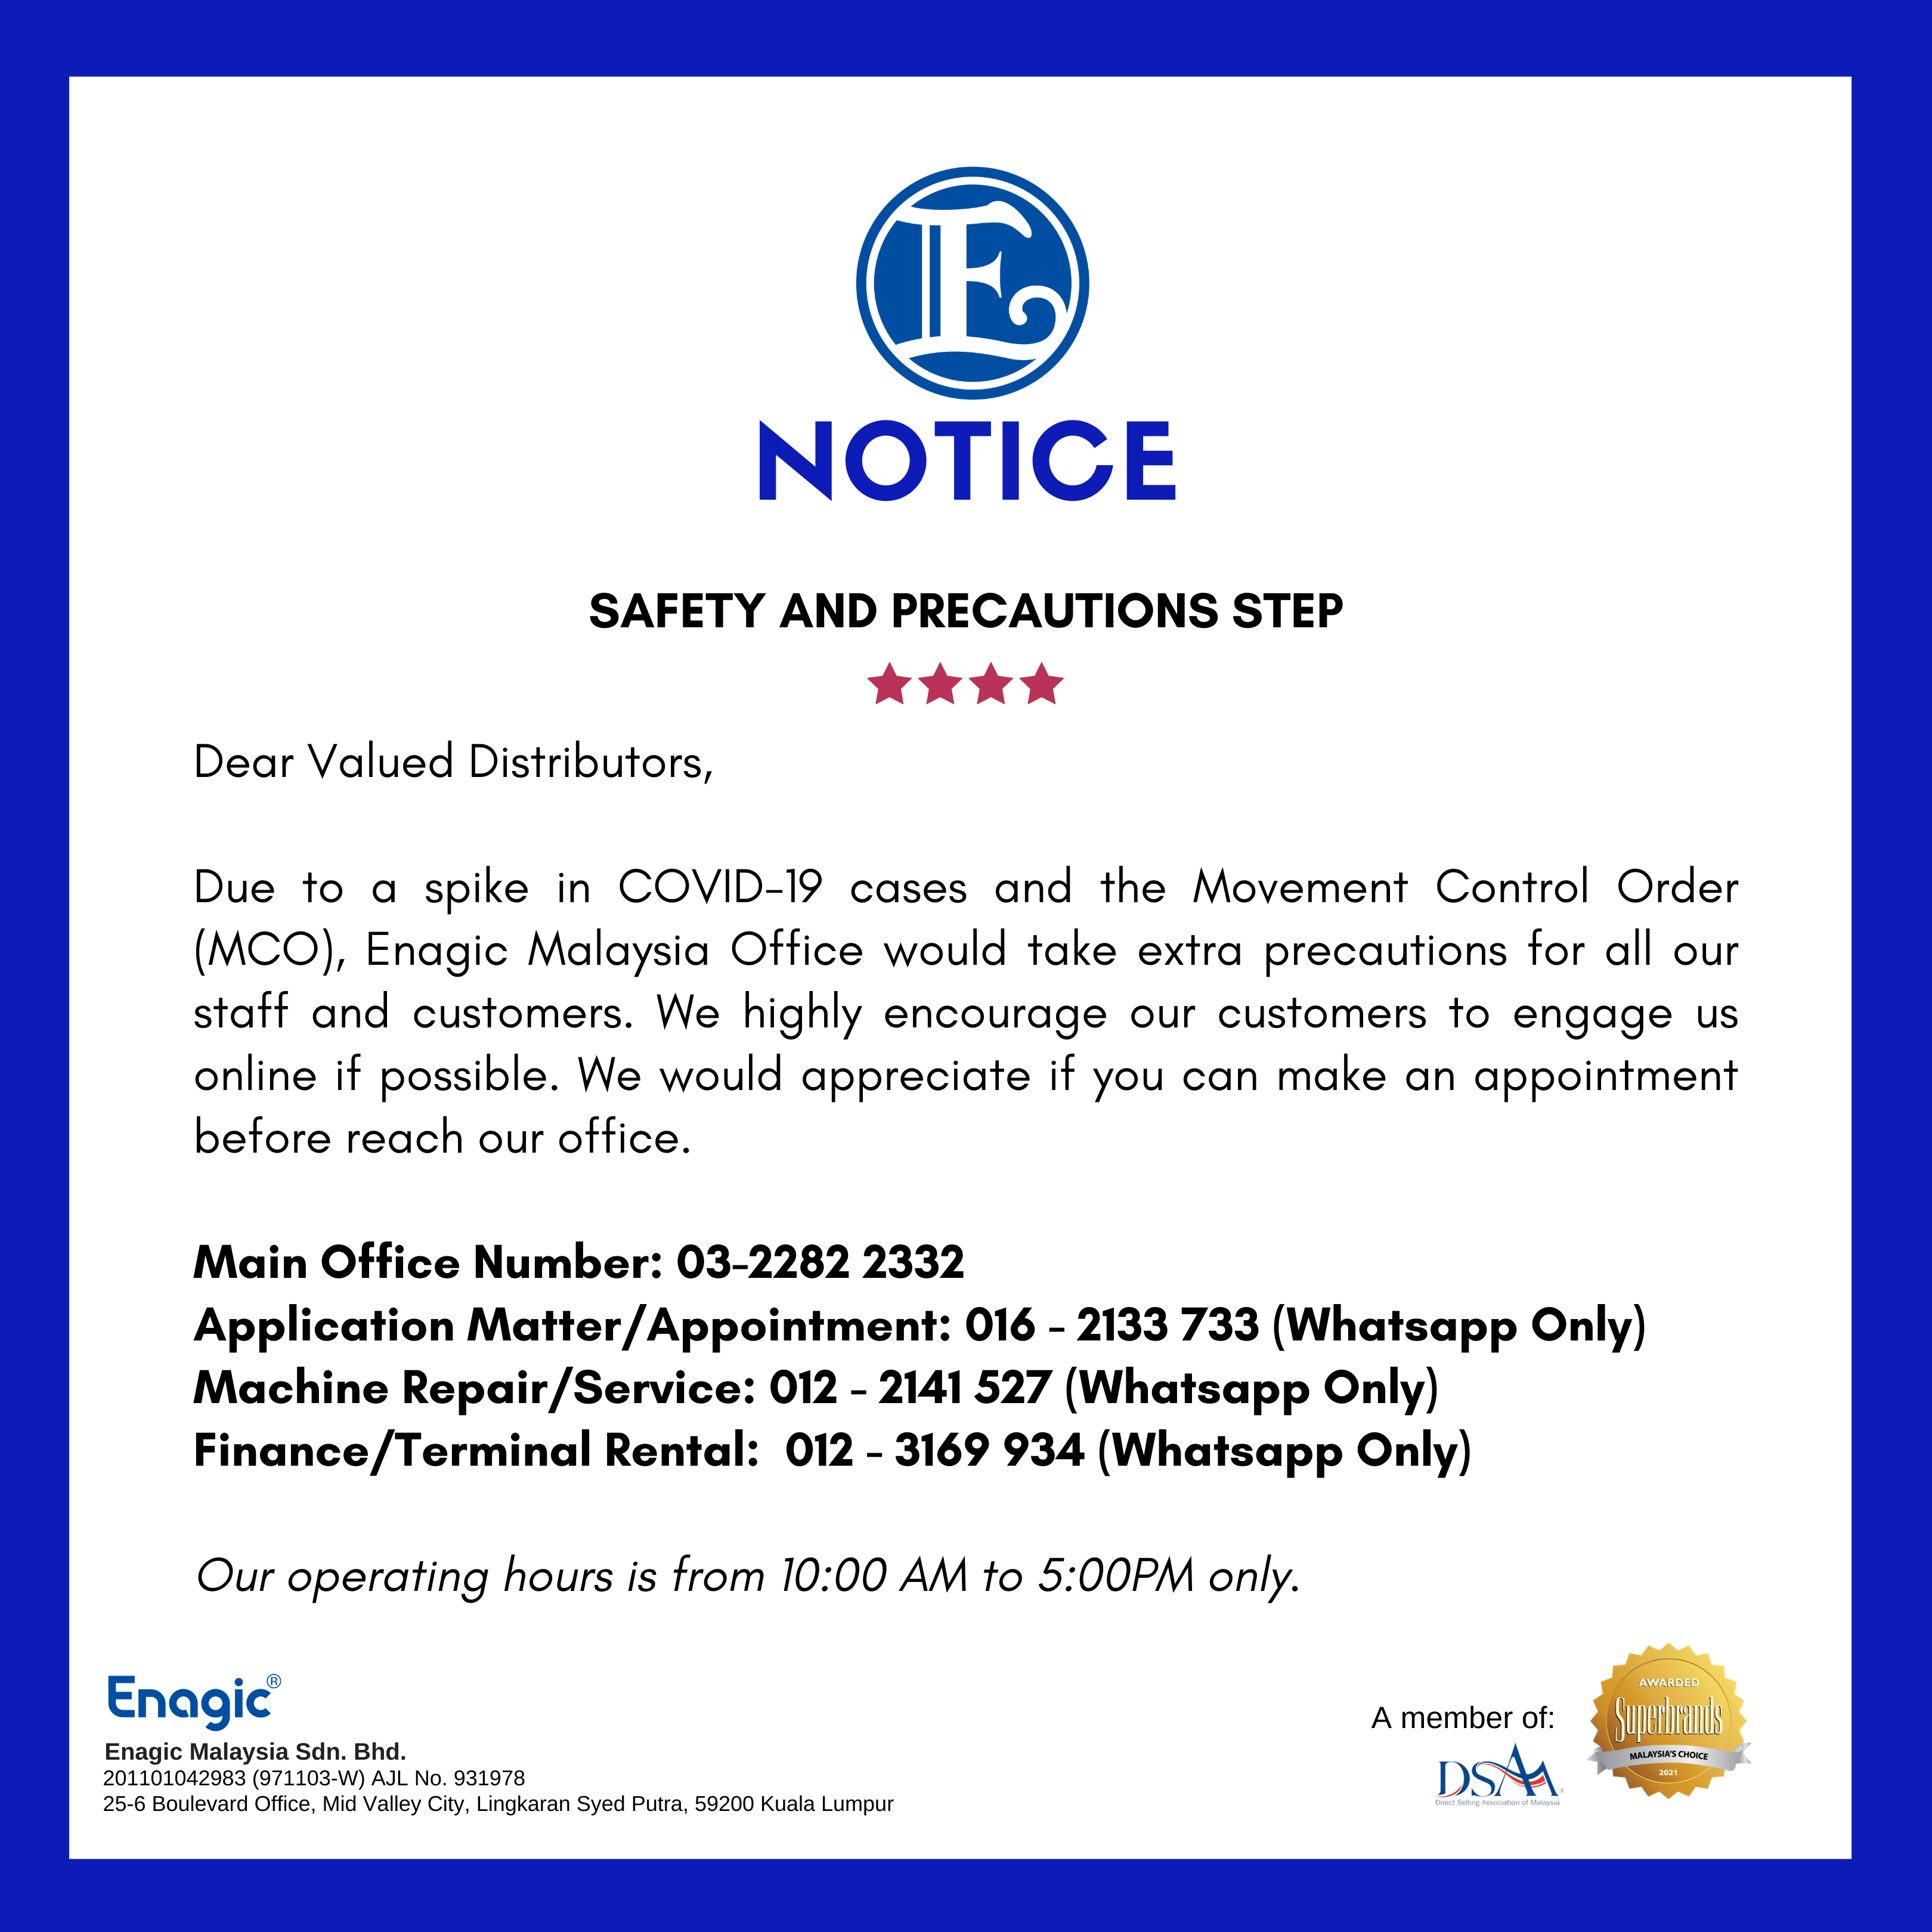 NOTICE | Safety And Precautions Step